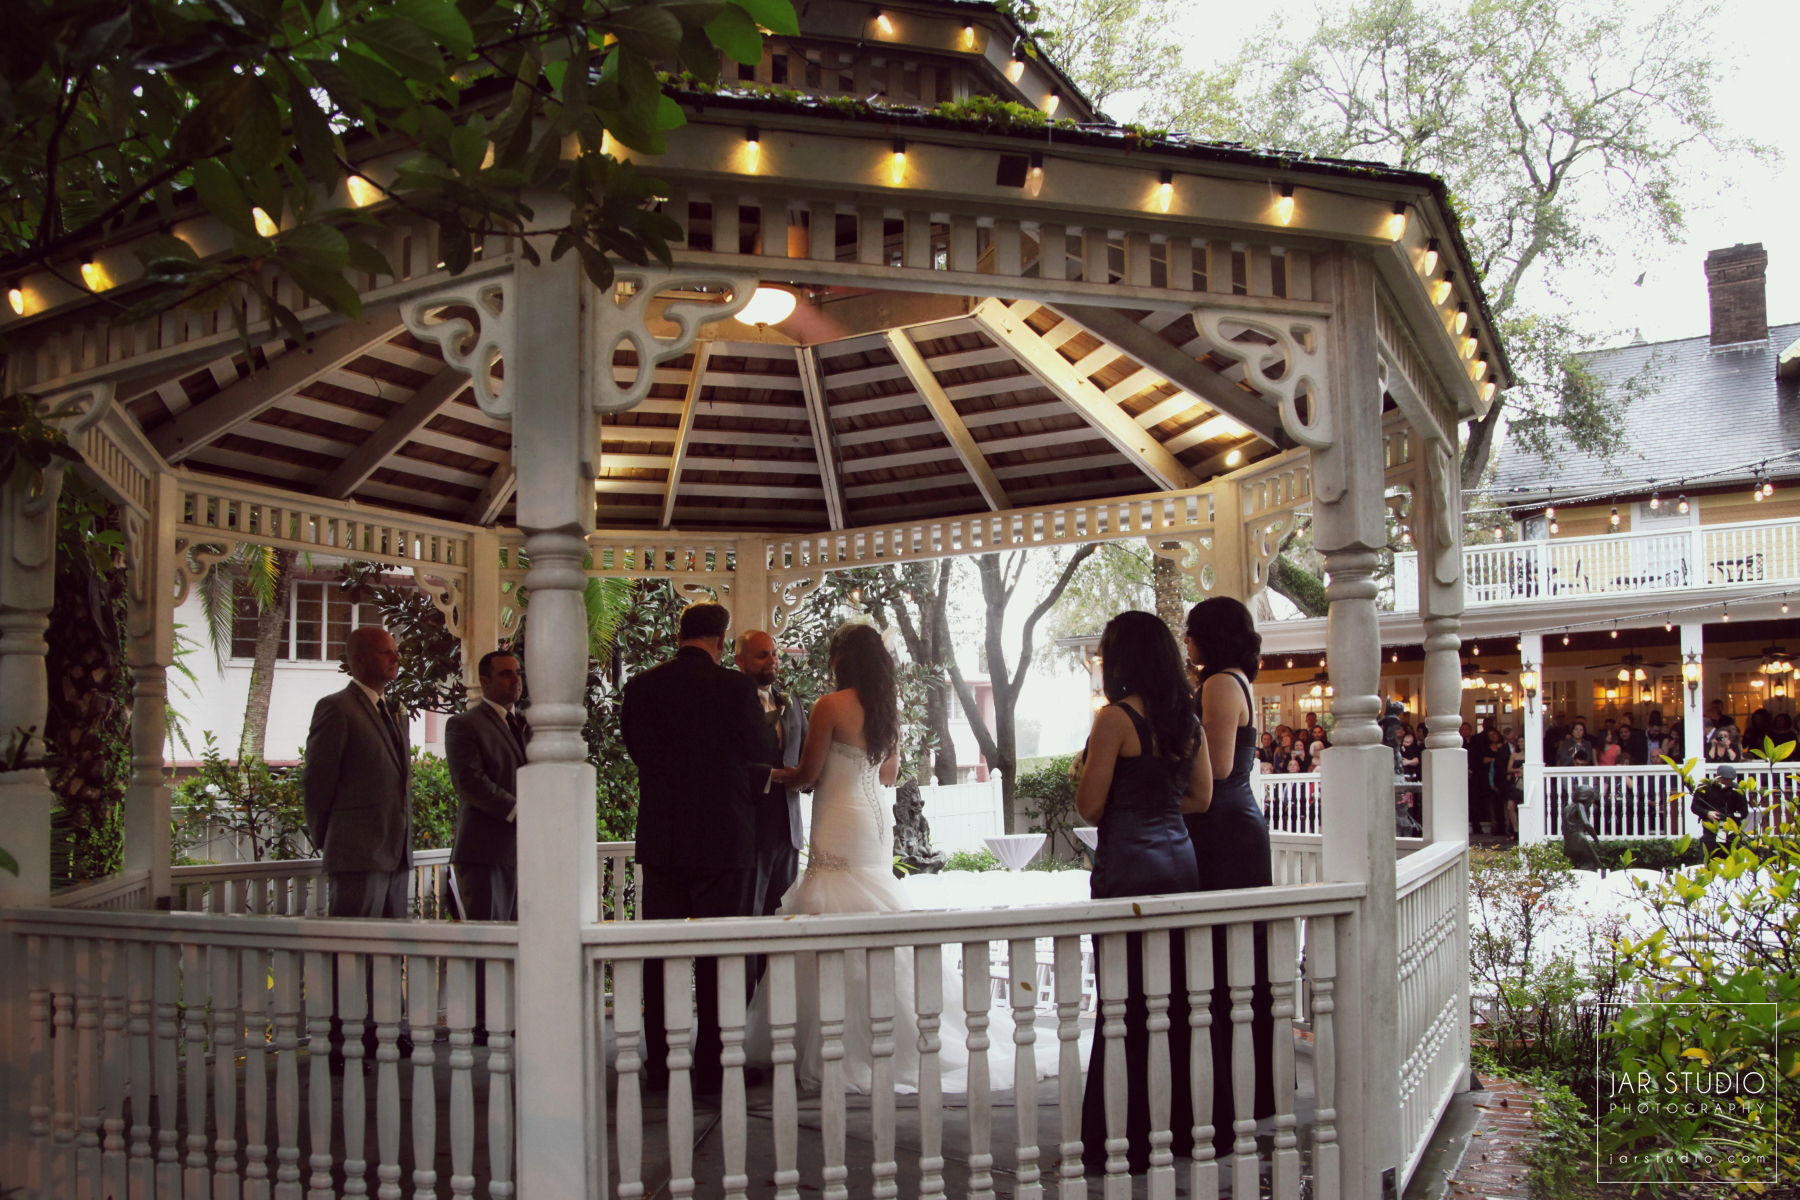 19-wedding-gazebo-dr-phillips-house-jarstudio-photography.JPG